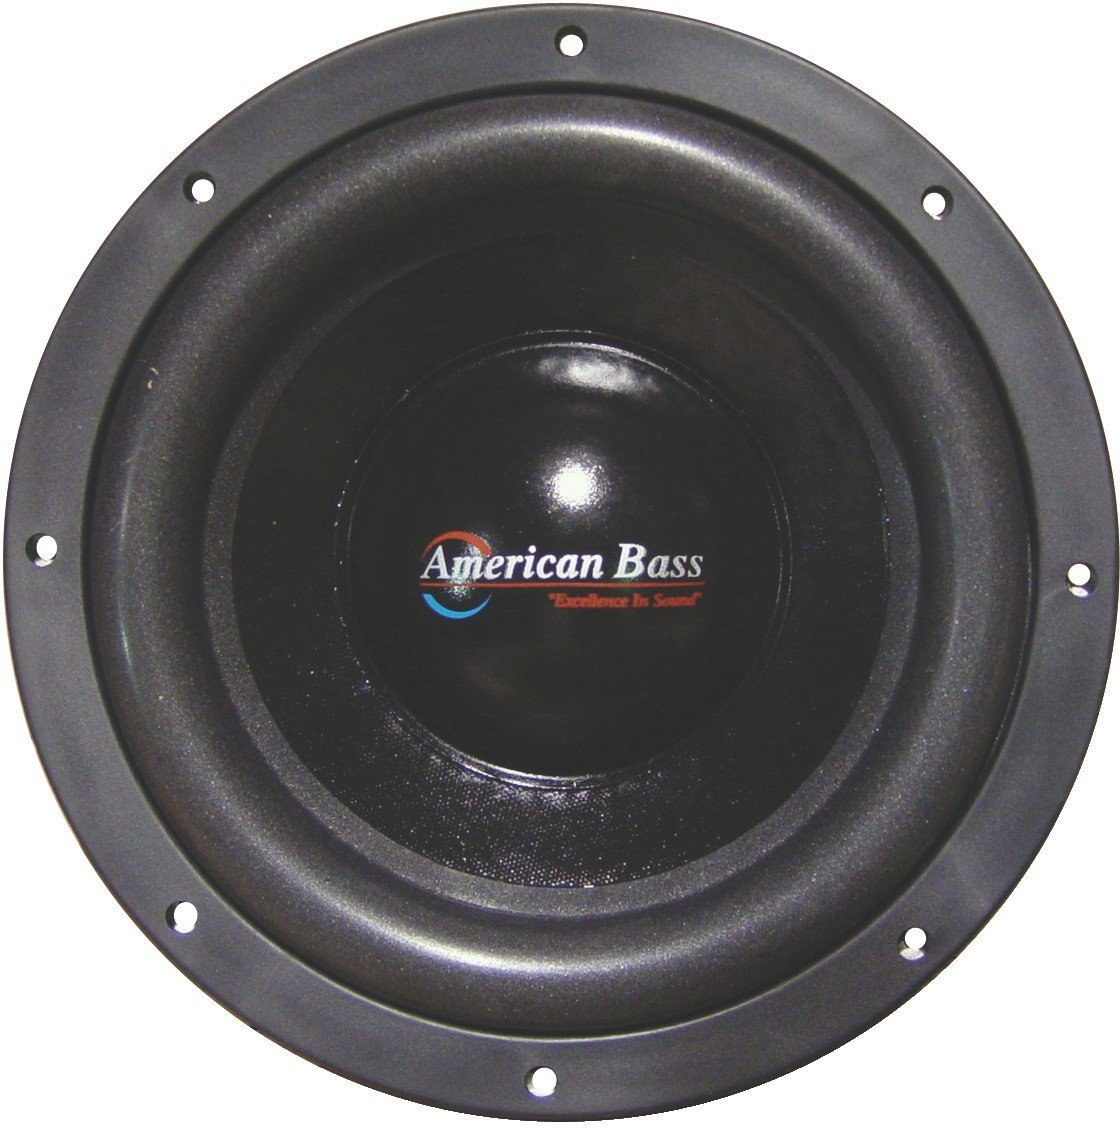 New American Bass Xr12d4 2400 Watt 12 Inch Dual 4 Ohm Subwoofer Wiring 3 Subs Also 2 Sub To A Car Audio Cell Phones Accessories